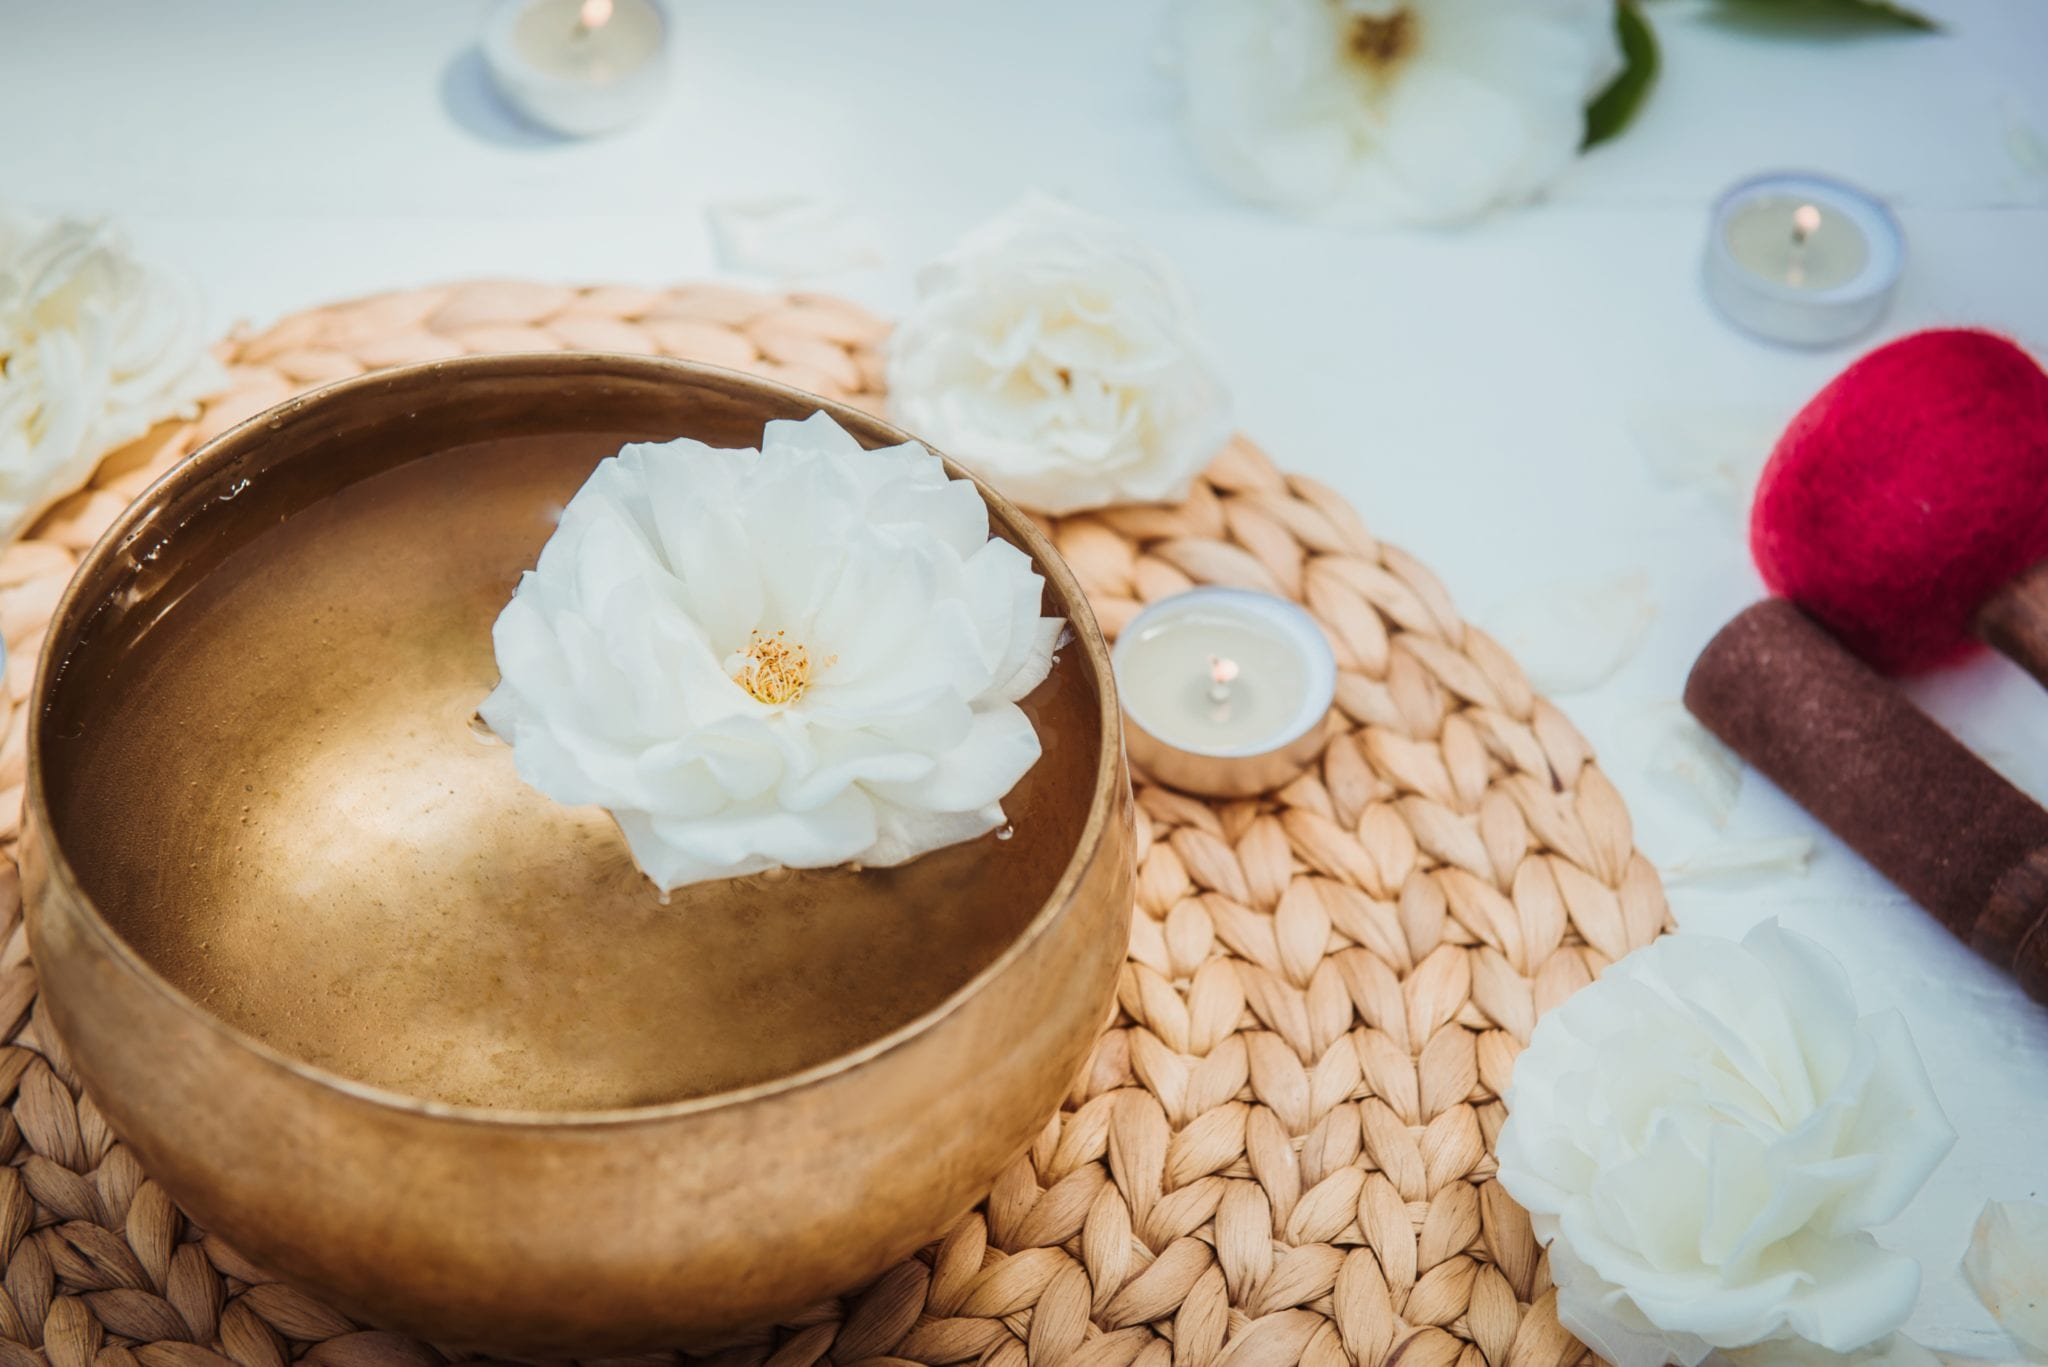 Tibetan singing bowl with floating in water rose inside. Special sticks, burning candles, flowers petals on the white wooden background. Meditation and Relax. Exotic massage. Copy space.